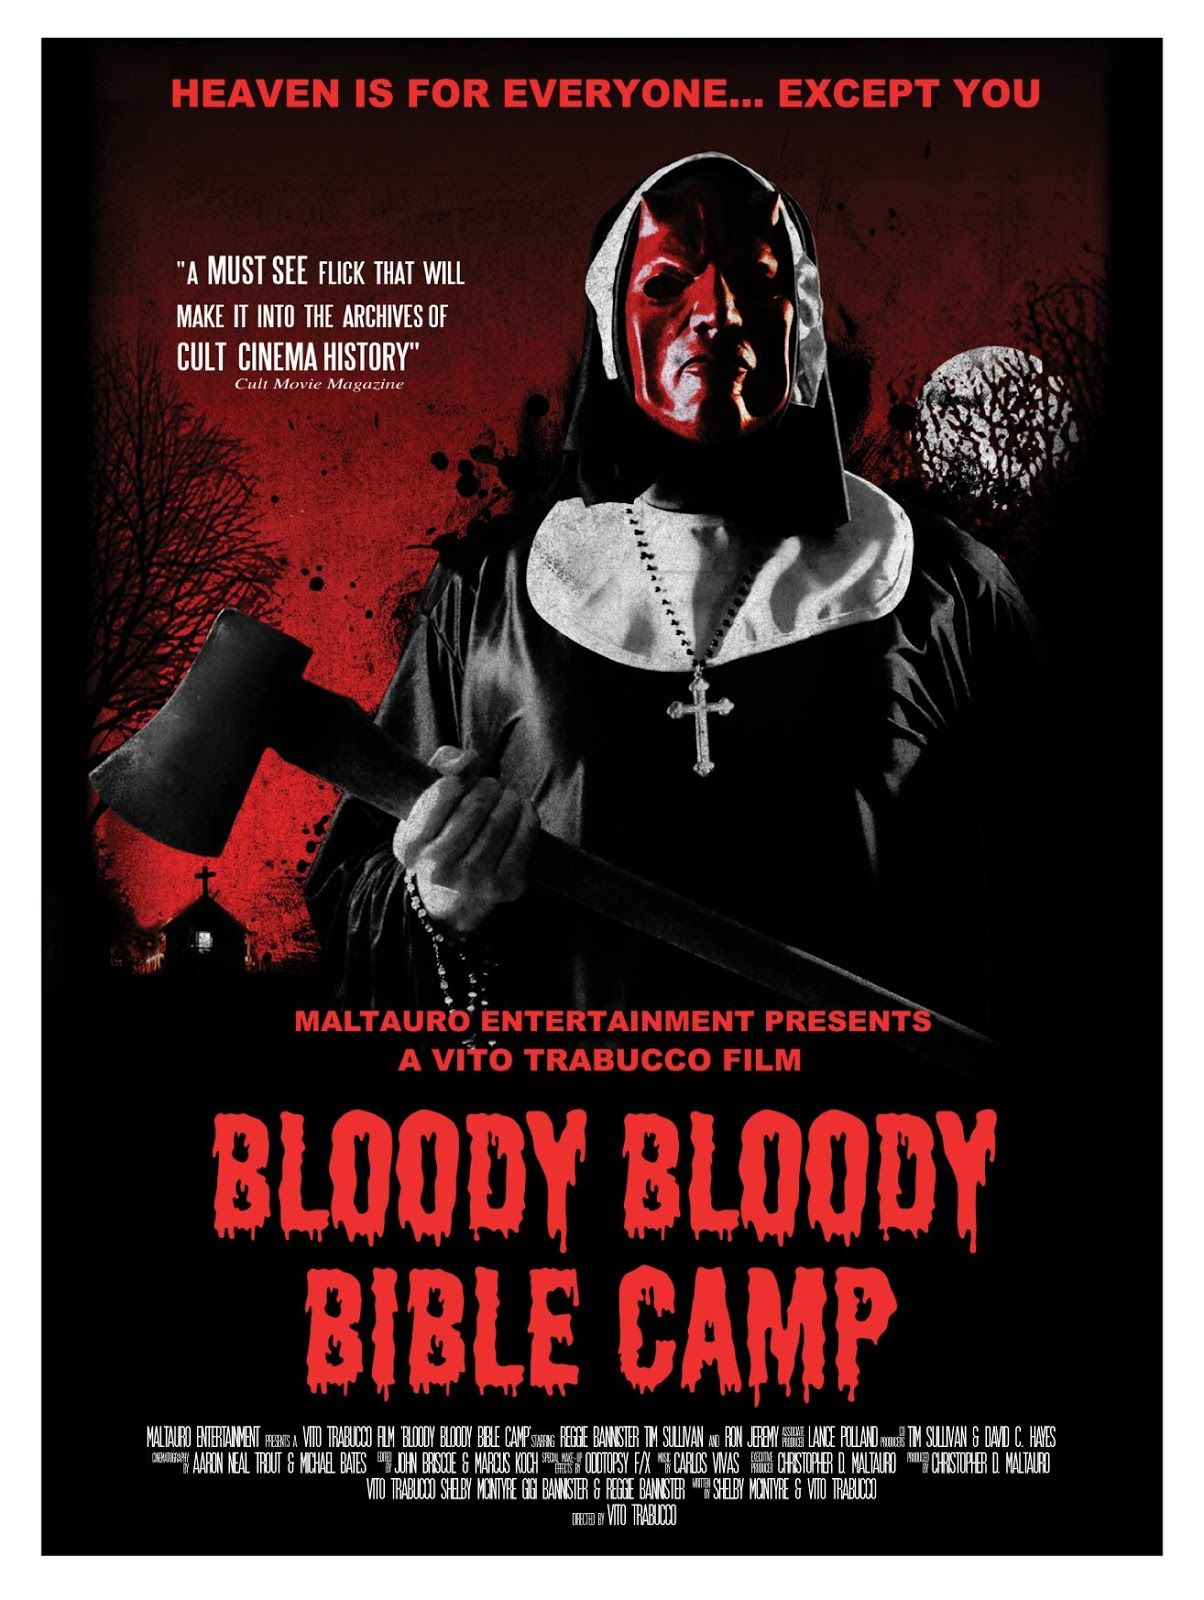 Bloody Bloody Bible Camp, truly a film about subtlety.